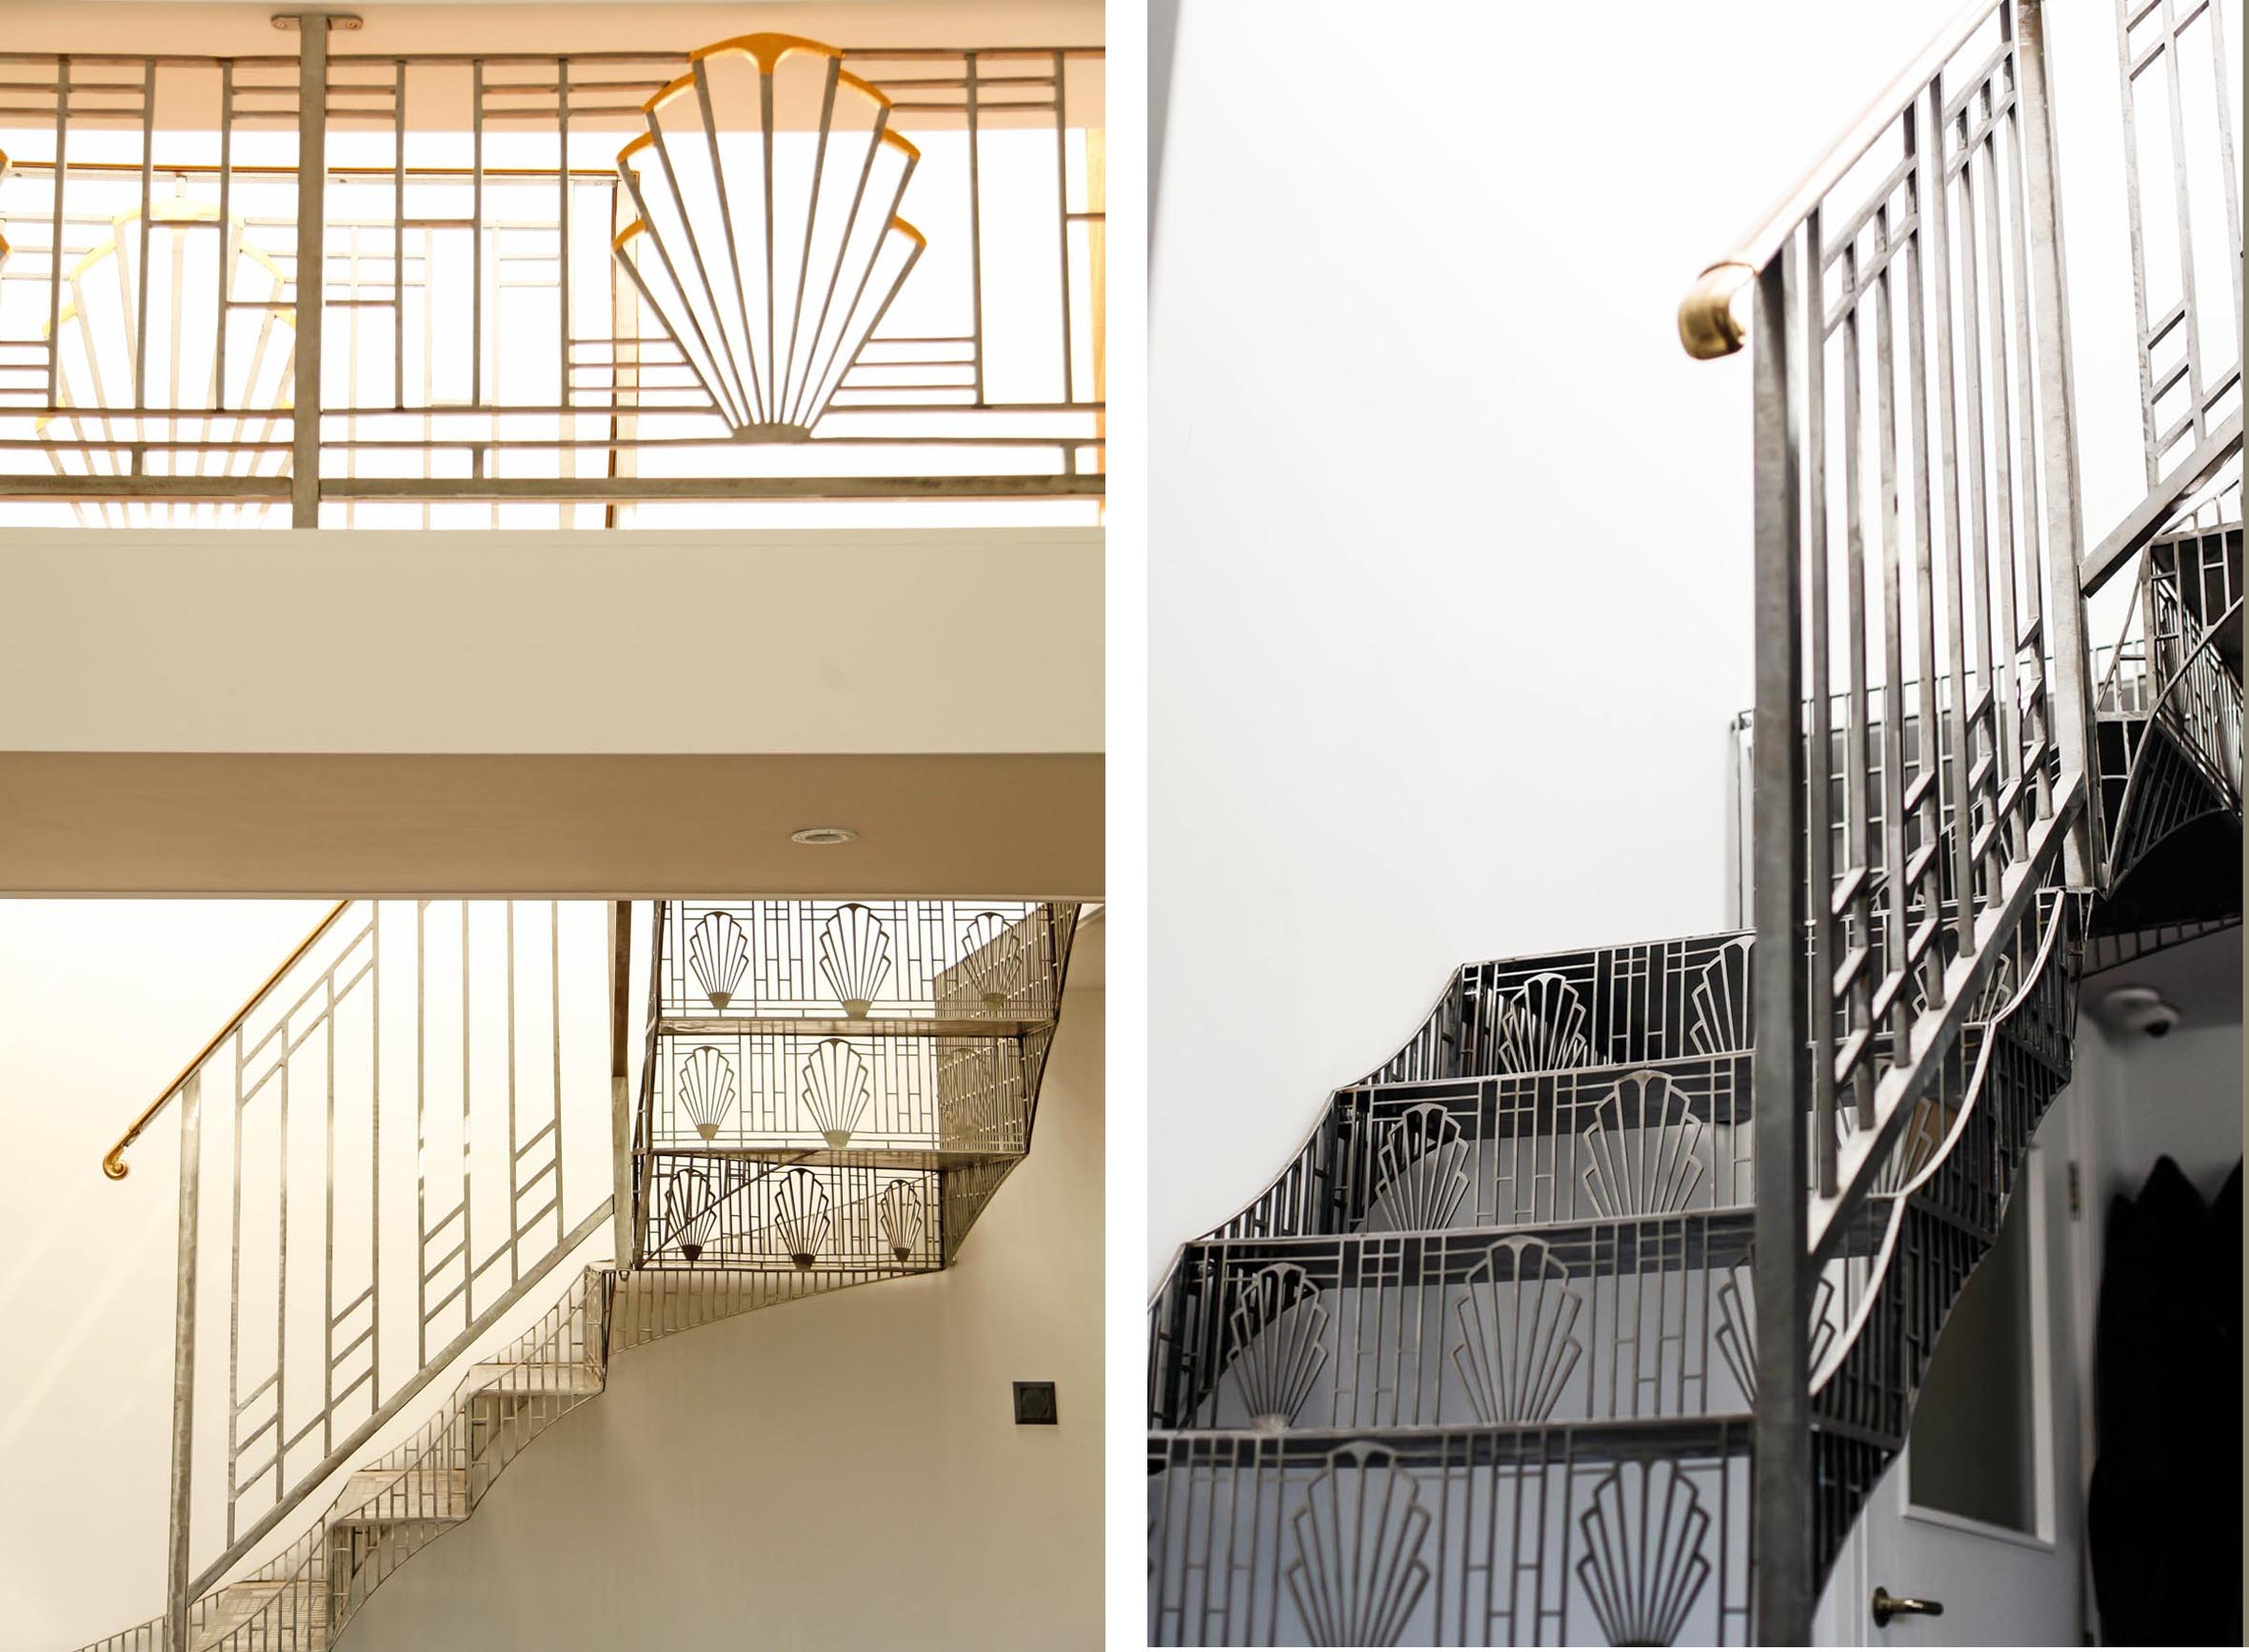 The stunning bespoke metal staircase designed and made by Jaz Asbury